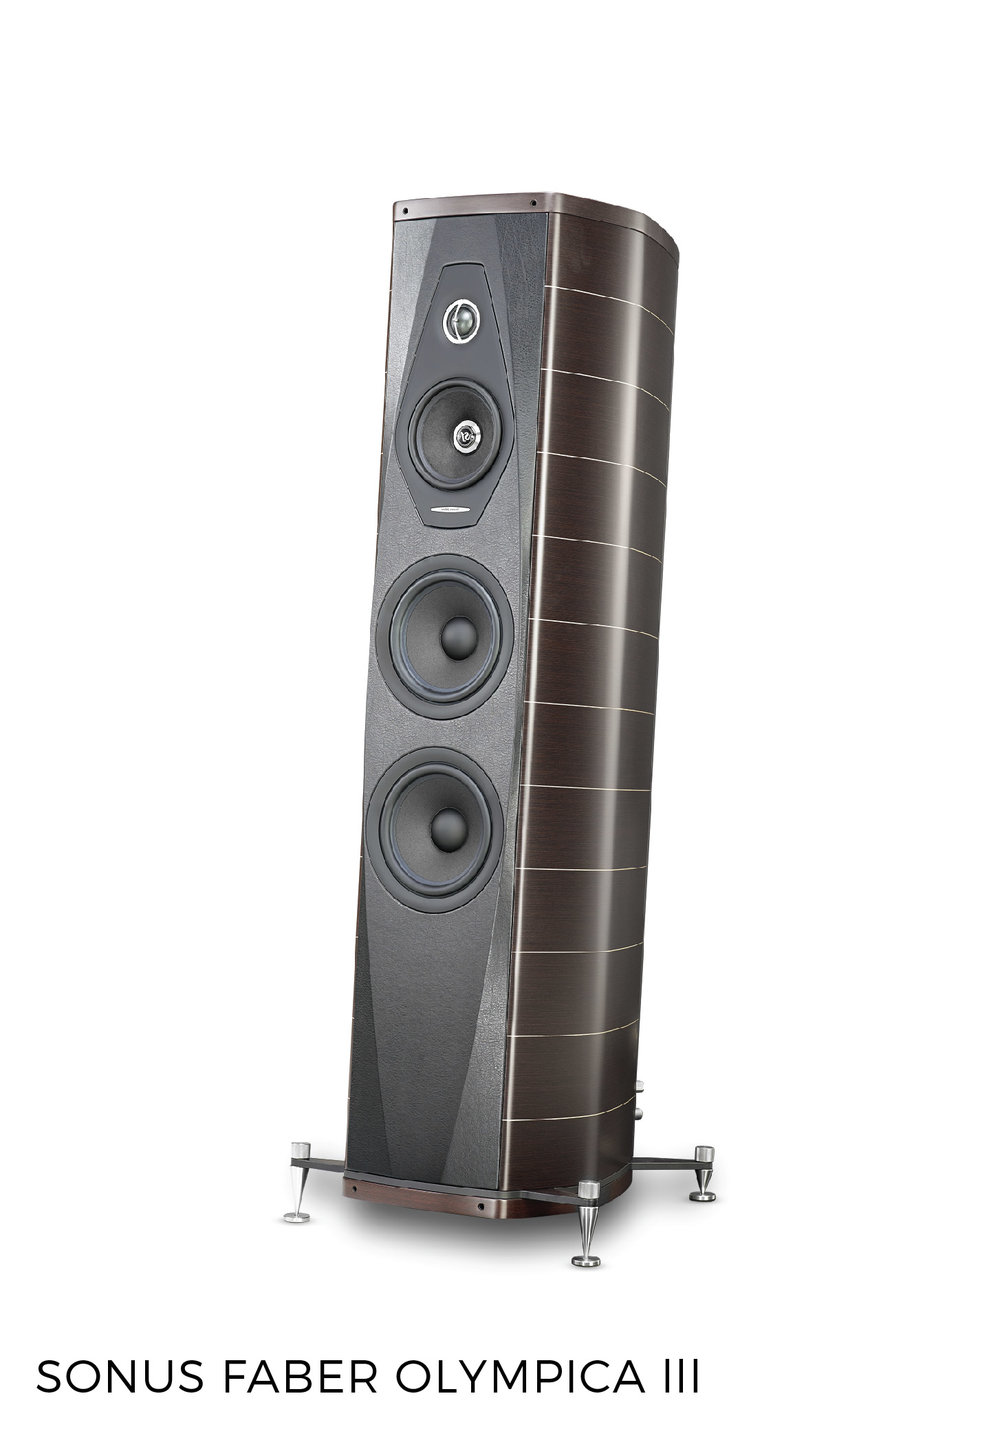 SONUS FABER OLYMPICA 3 DONG THANH - HOA PHUC